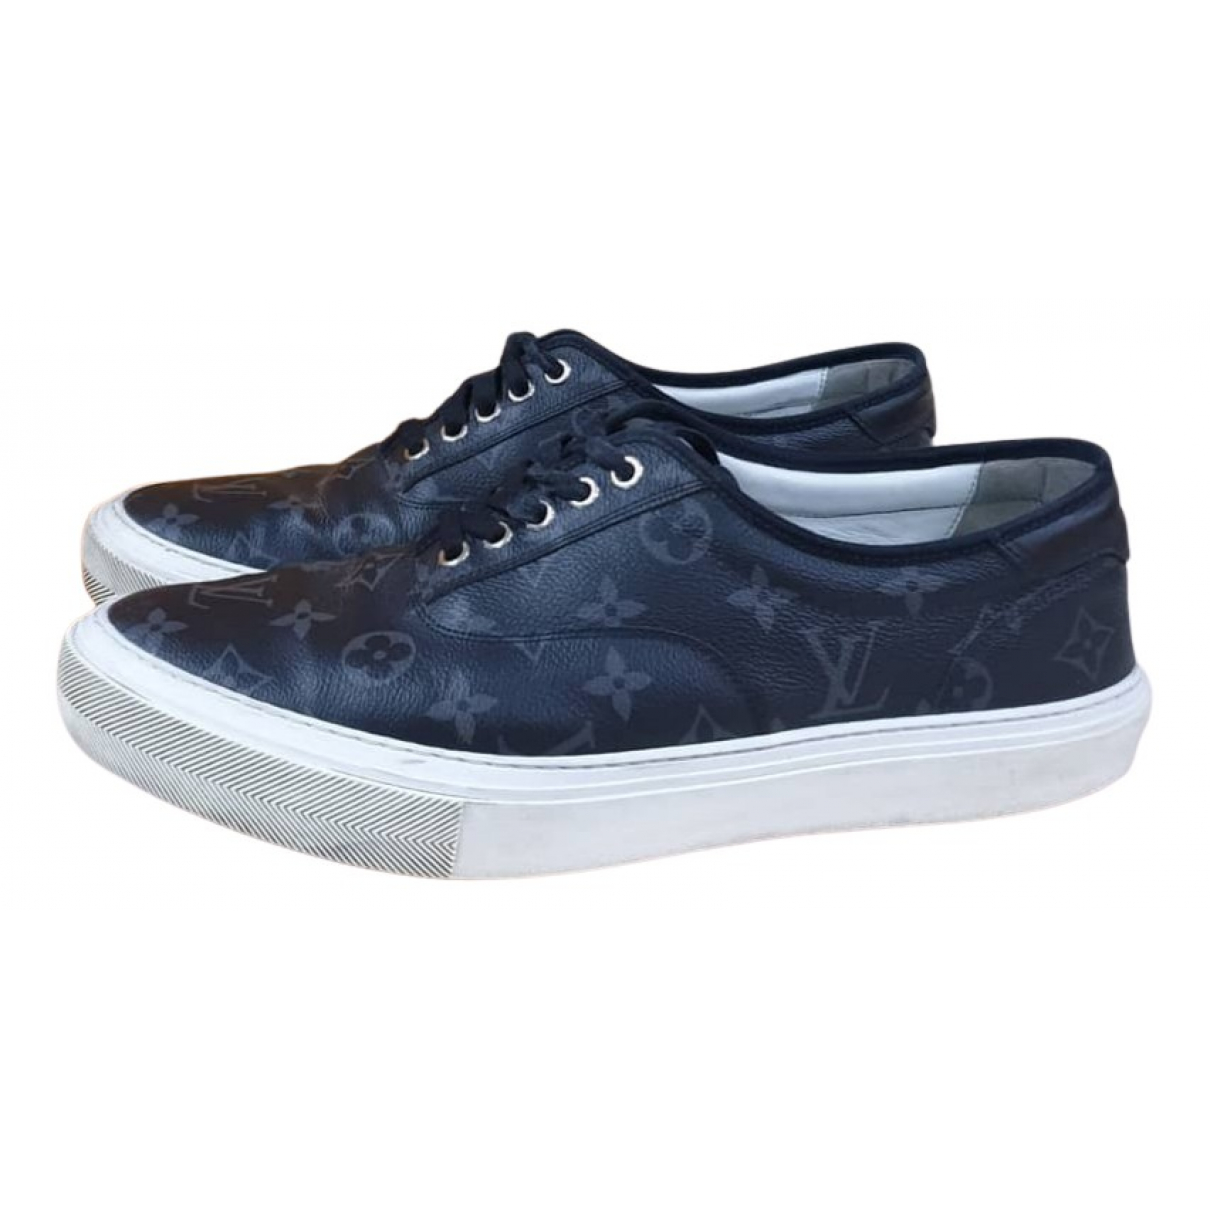 Louis Vuitton Trocadero Blue Cloth Trainers for Men 10 US